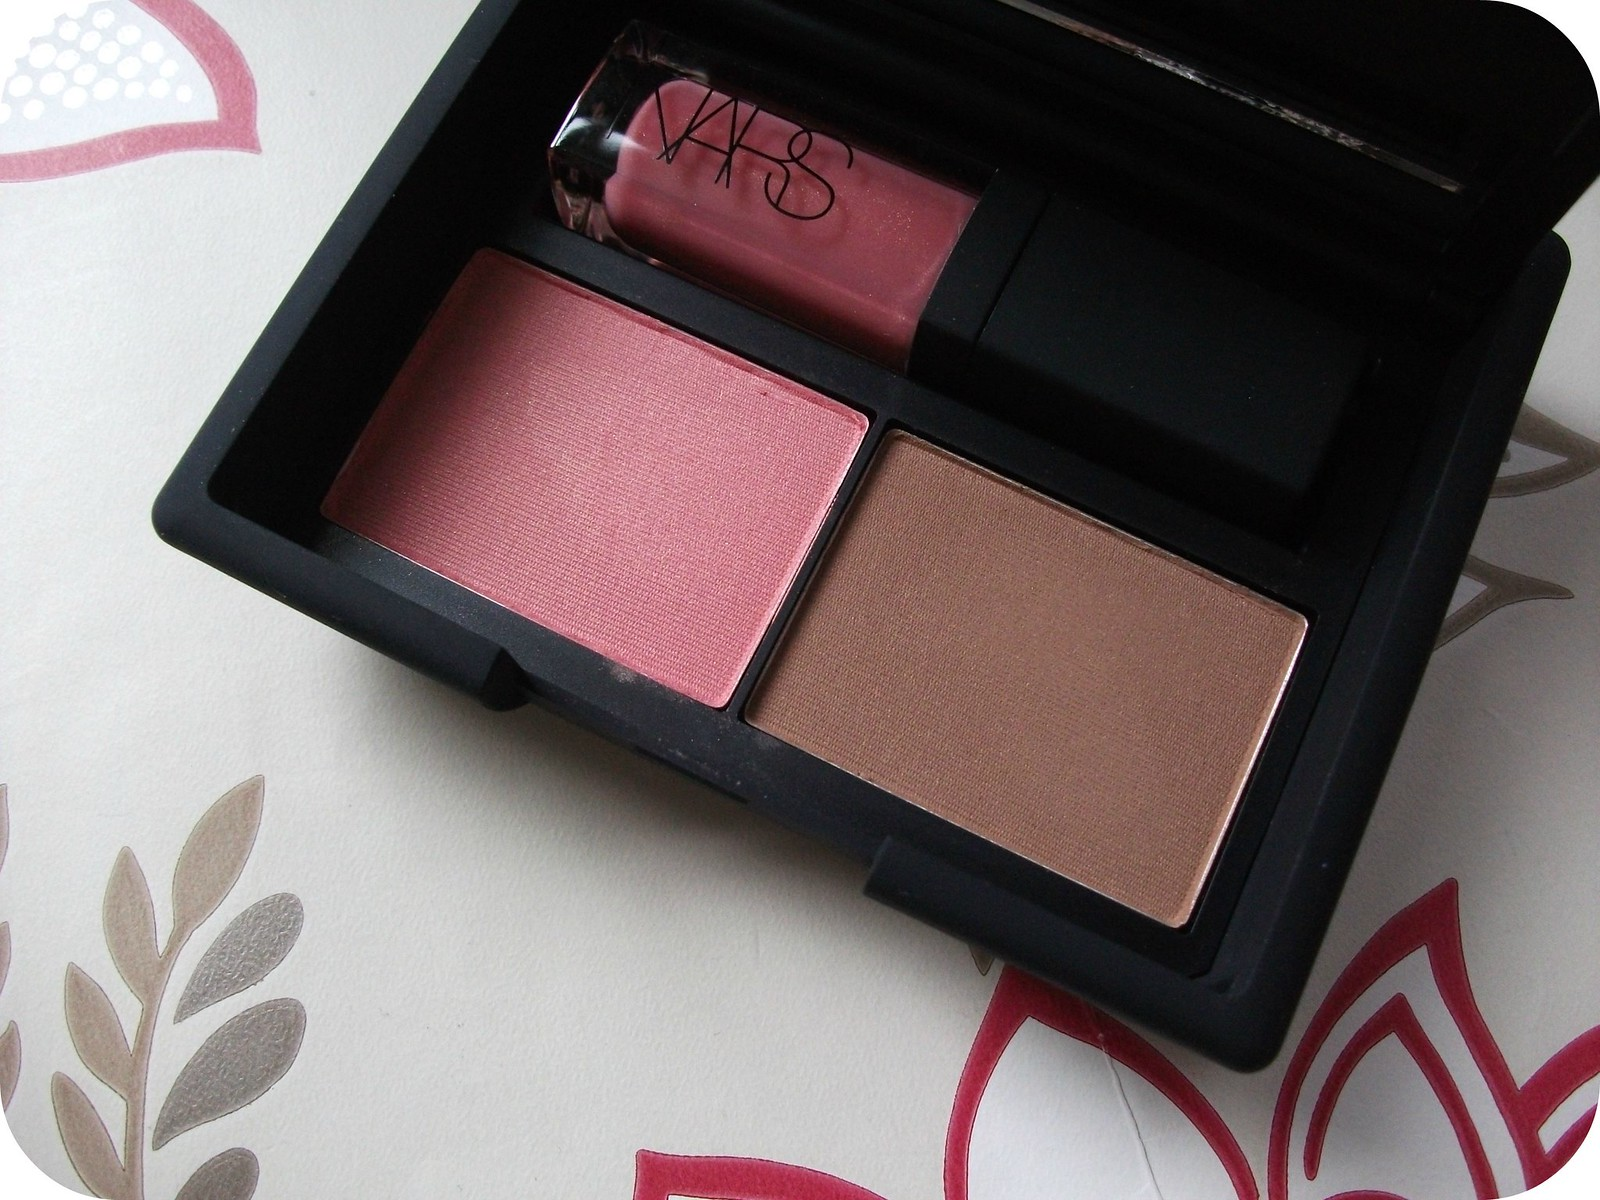 NARS Guy Bourdin Crime of Passion Palette Cheeks 2